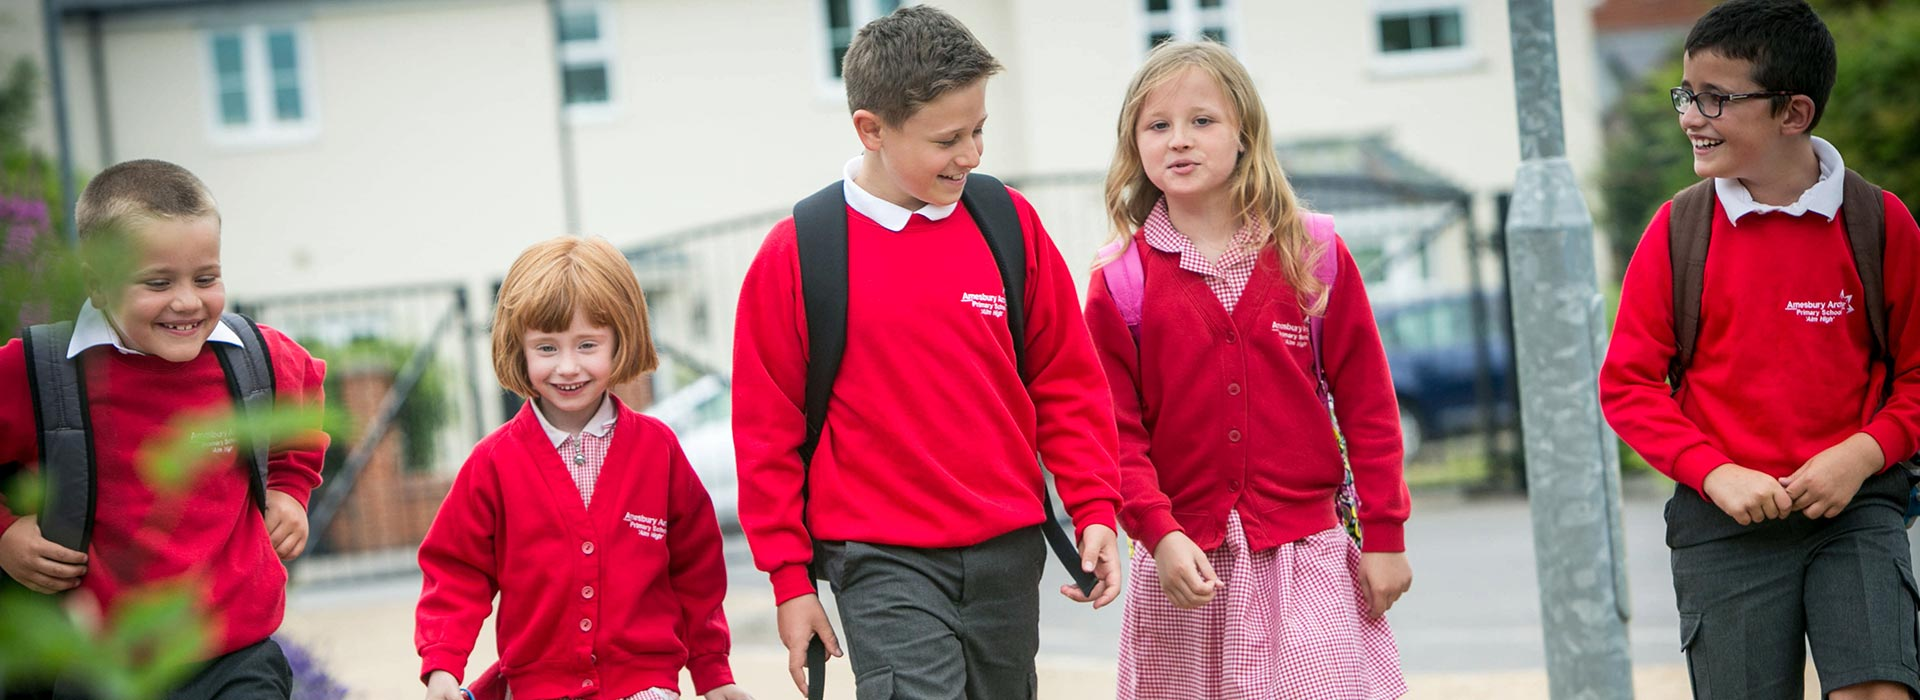 Life at Amesbury Archer Primary School